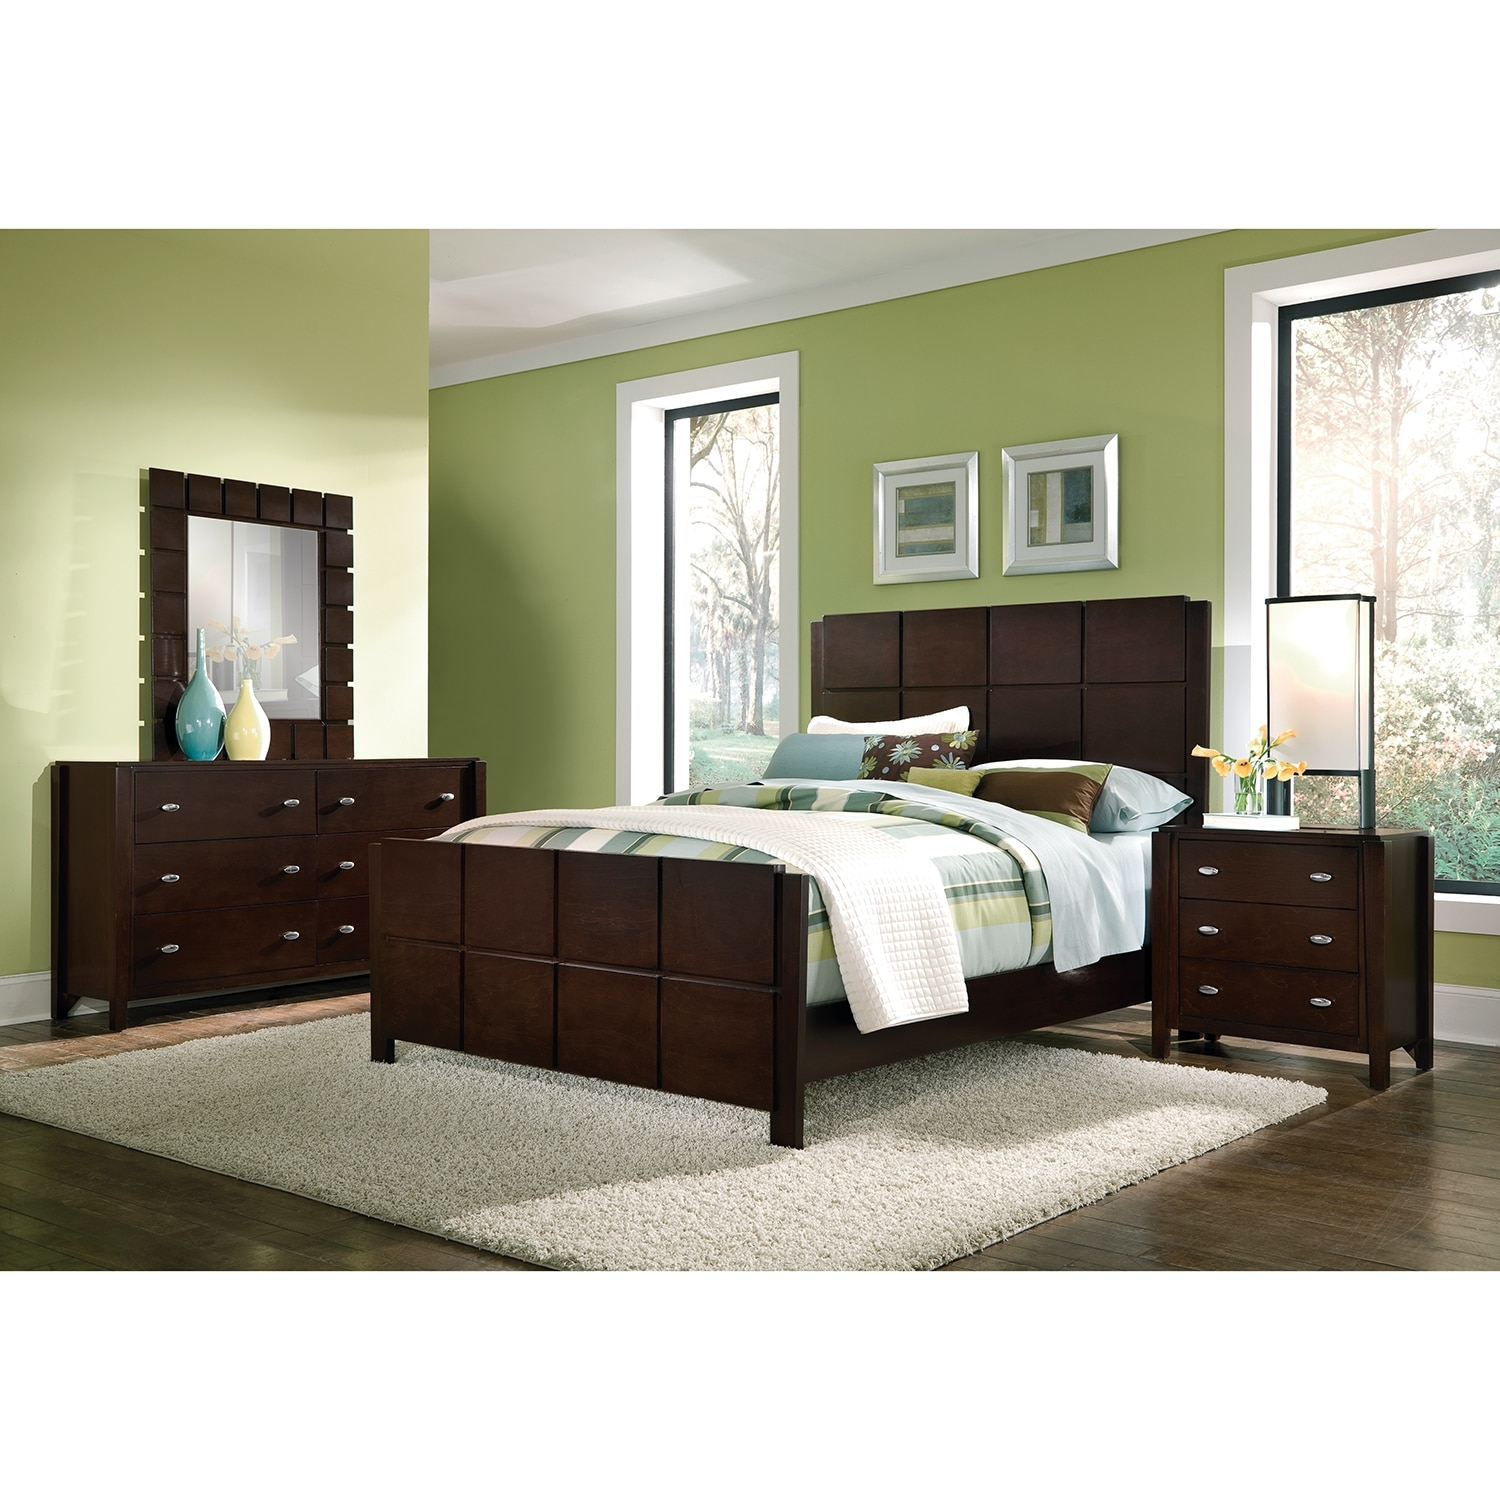 Mosaic 6 piece queen bedroom set dark brown value city - Used queen bedroom sets for sale ...